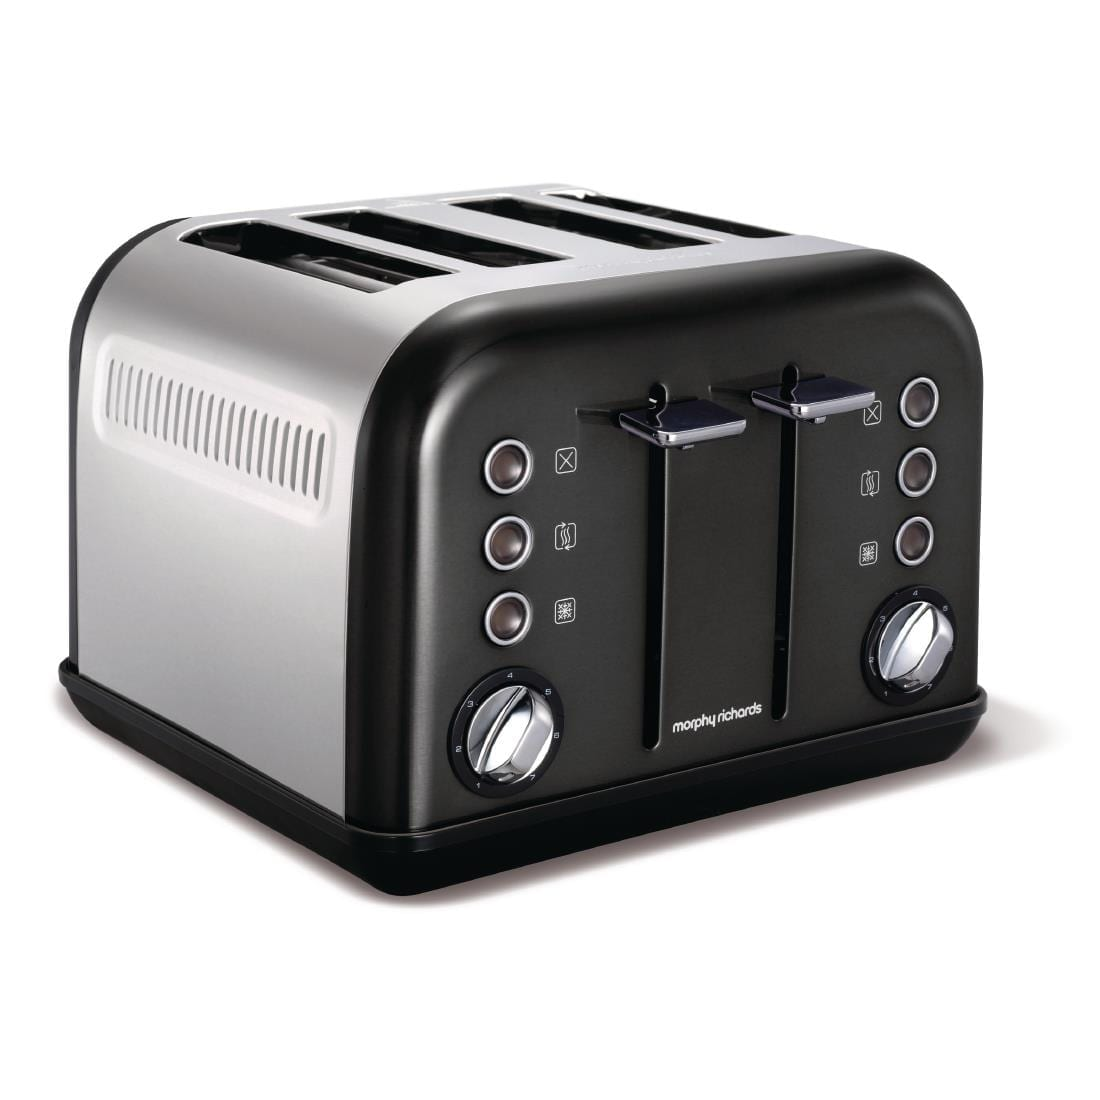 Morphy Richards Toaster New Accents 4 Slice  Black